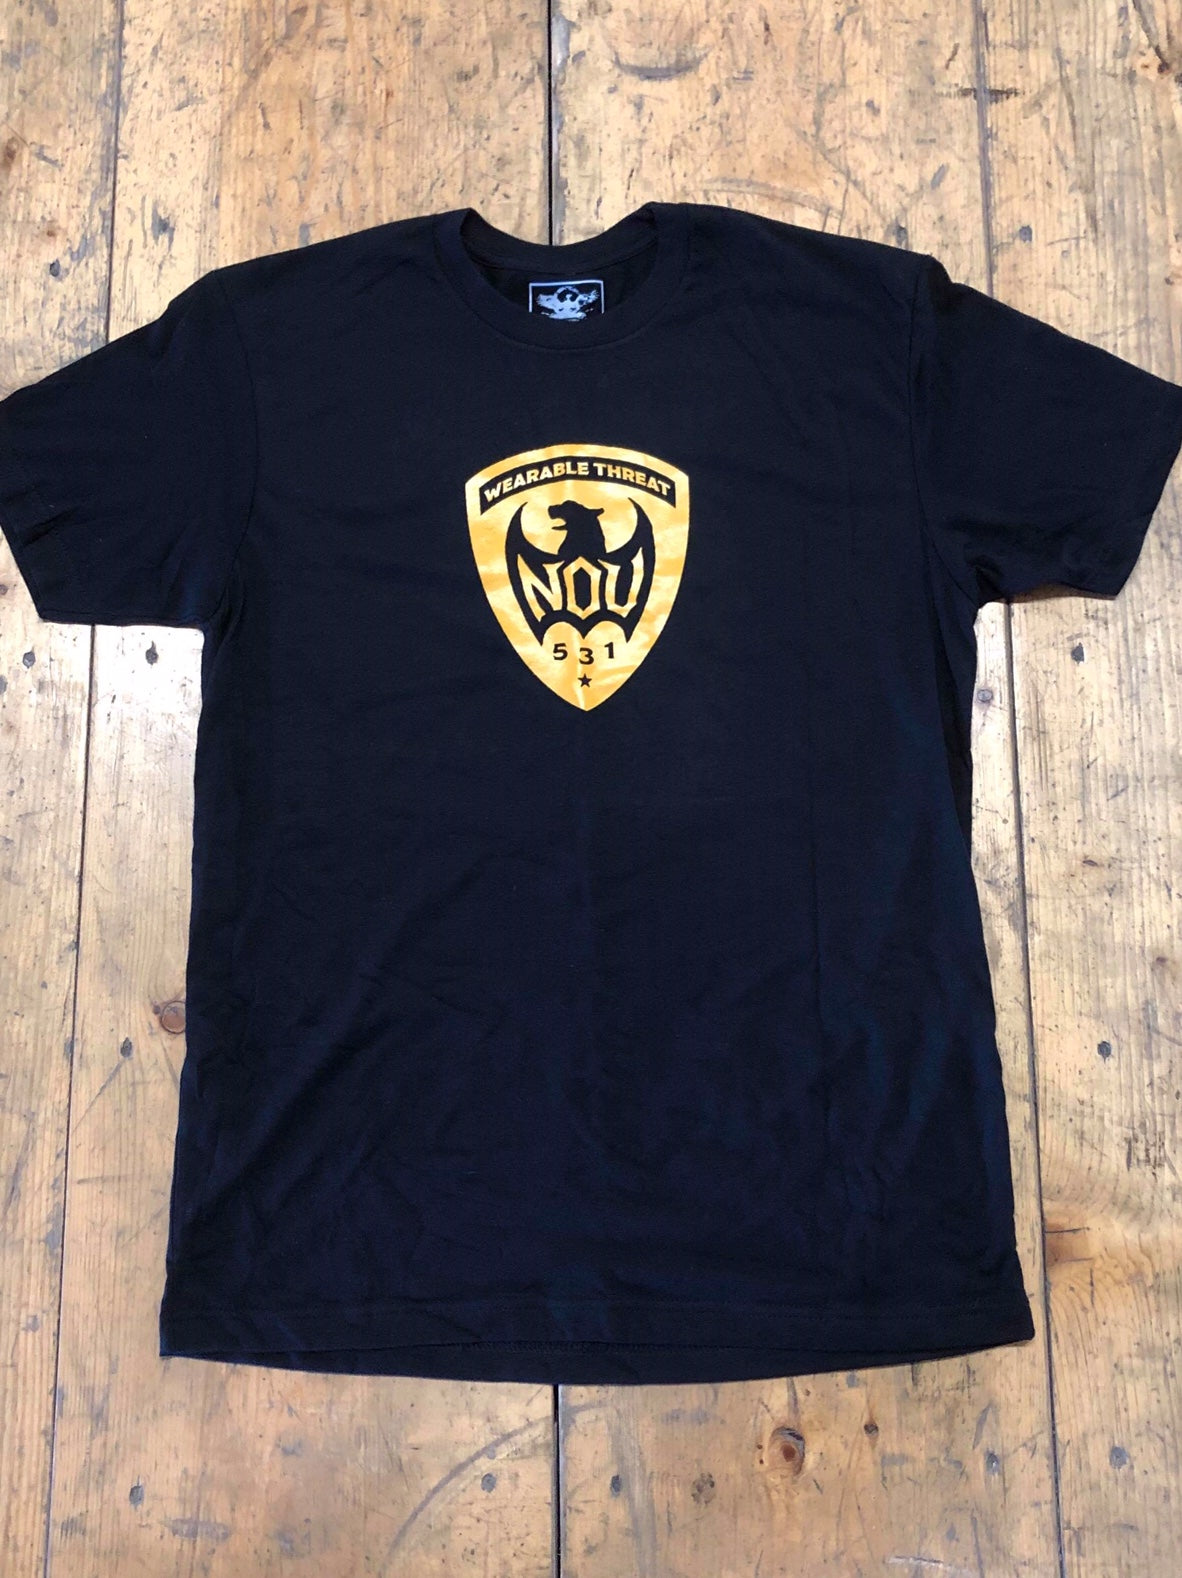 N.O.V. Shield Shirt - JimWendler.com